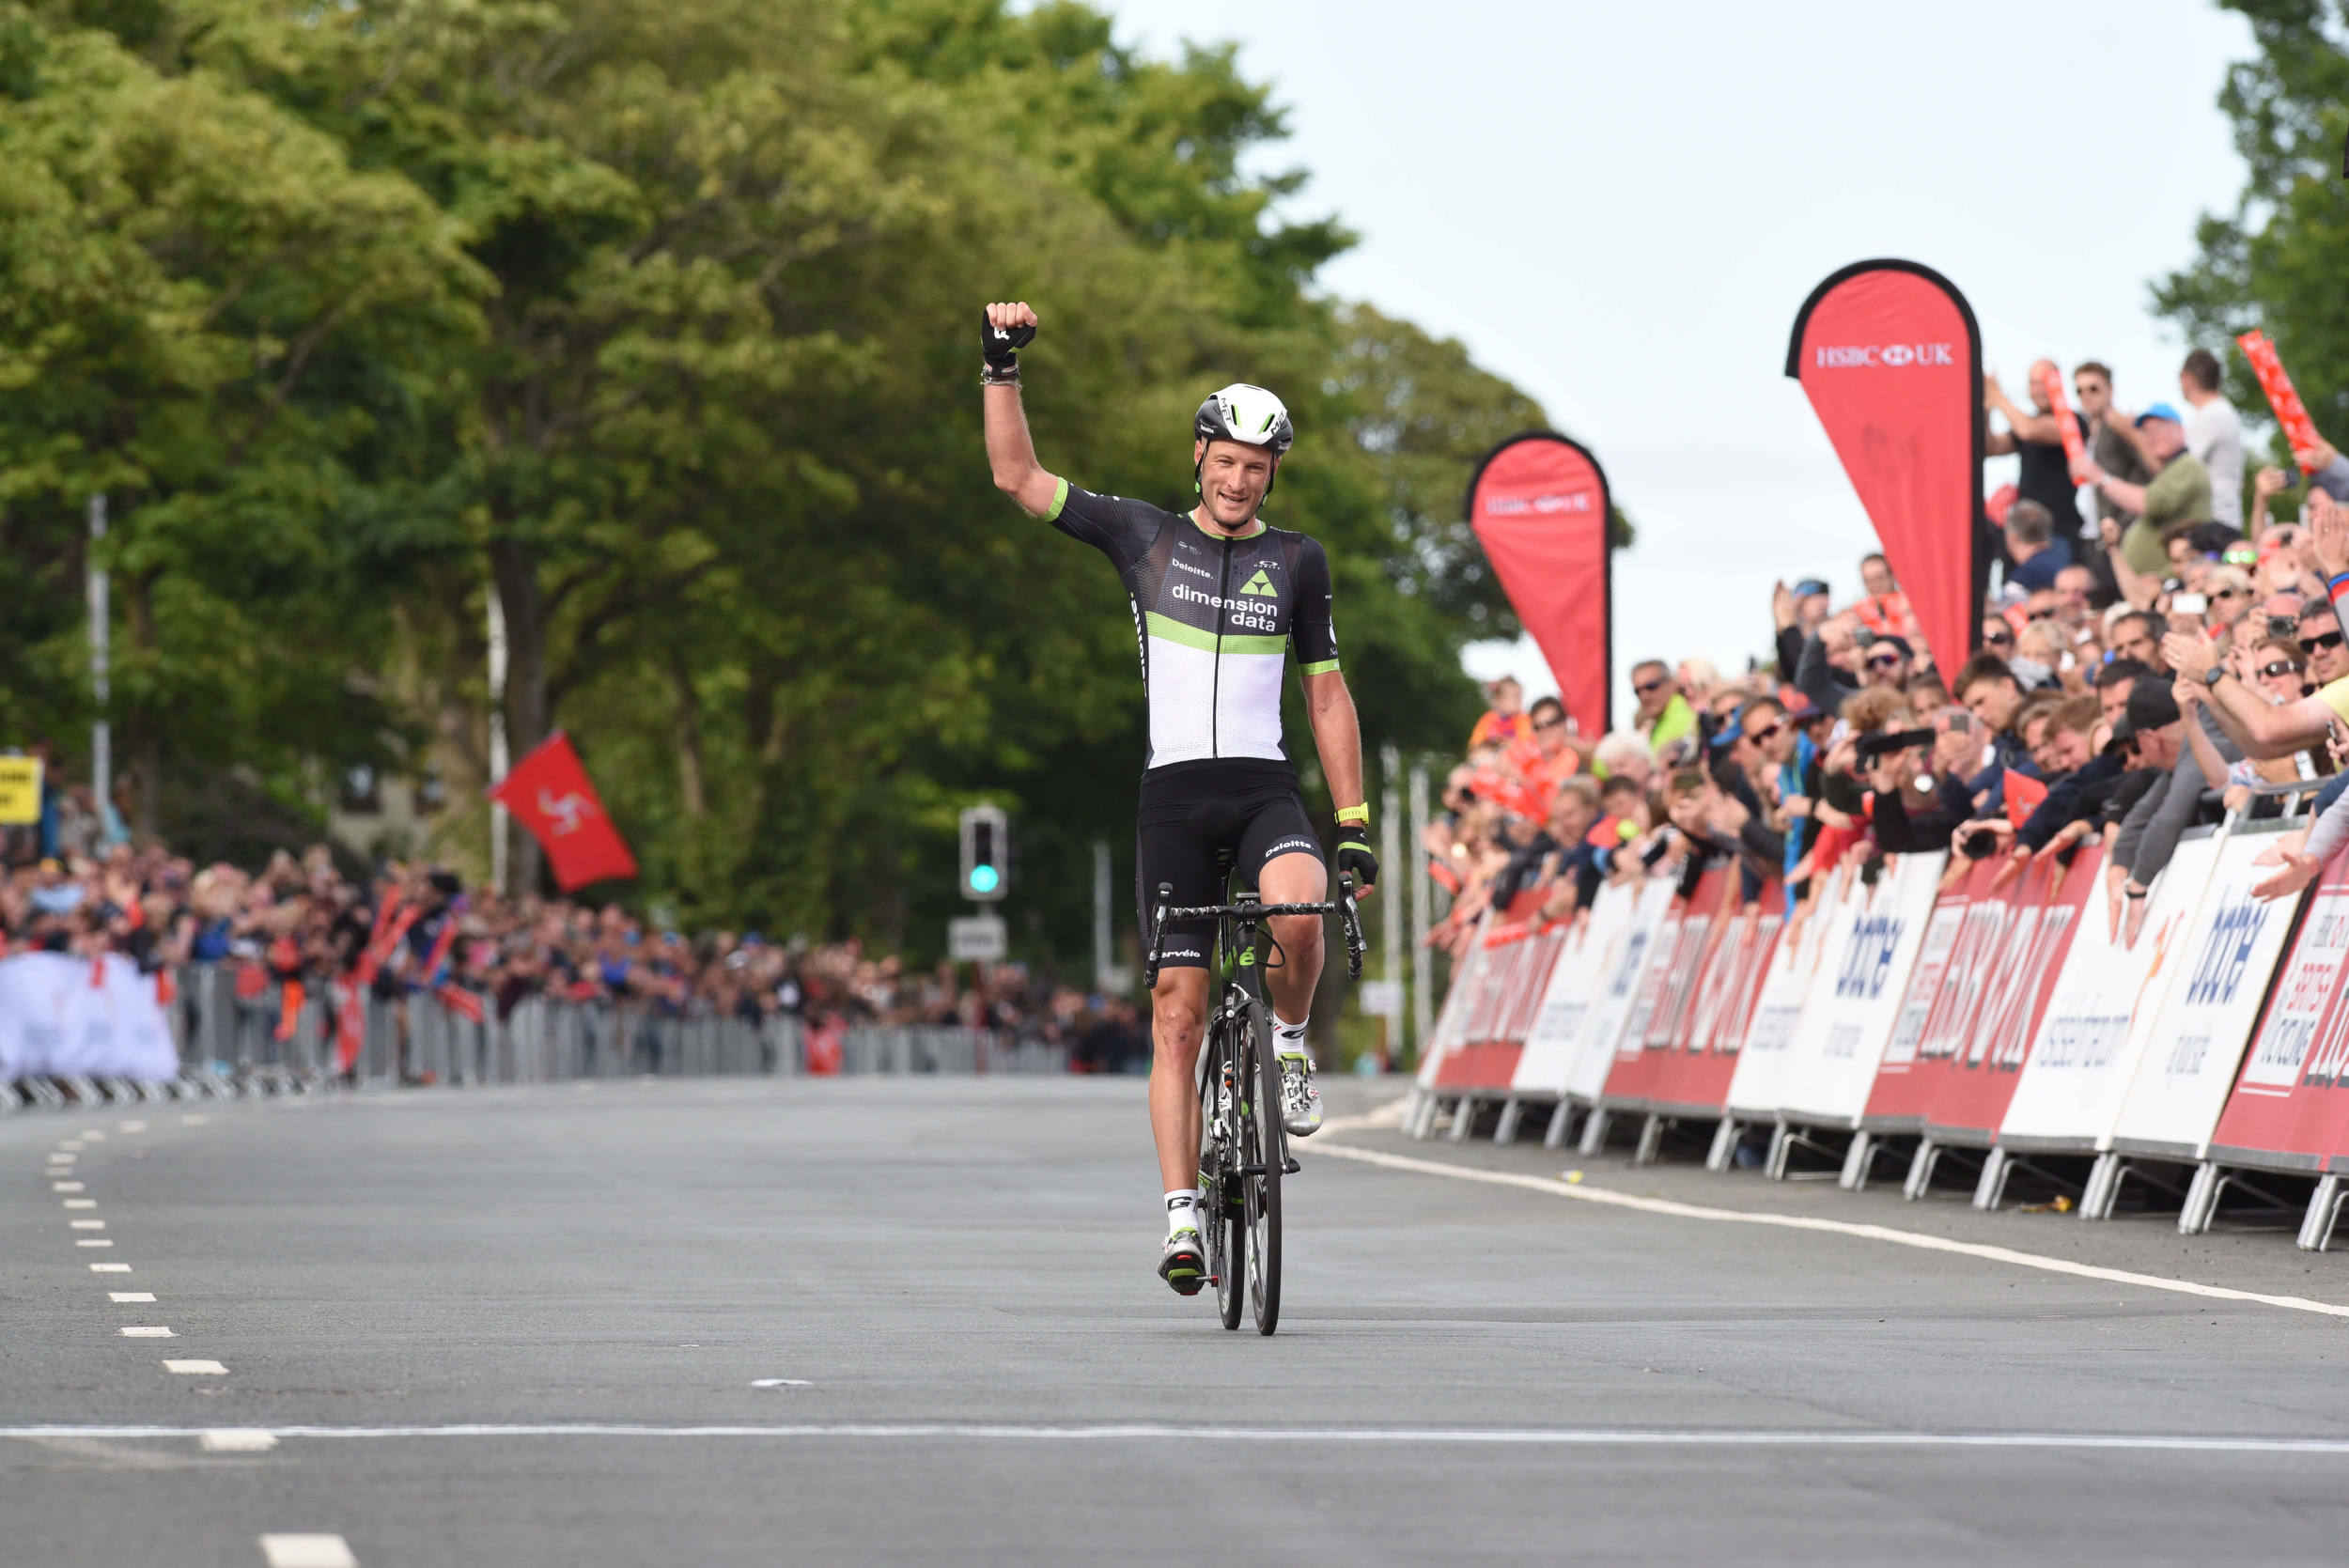 Steve Cummings wins the men's road race at 2017 UK National Road Cycling Championships